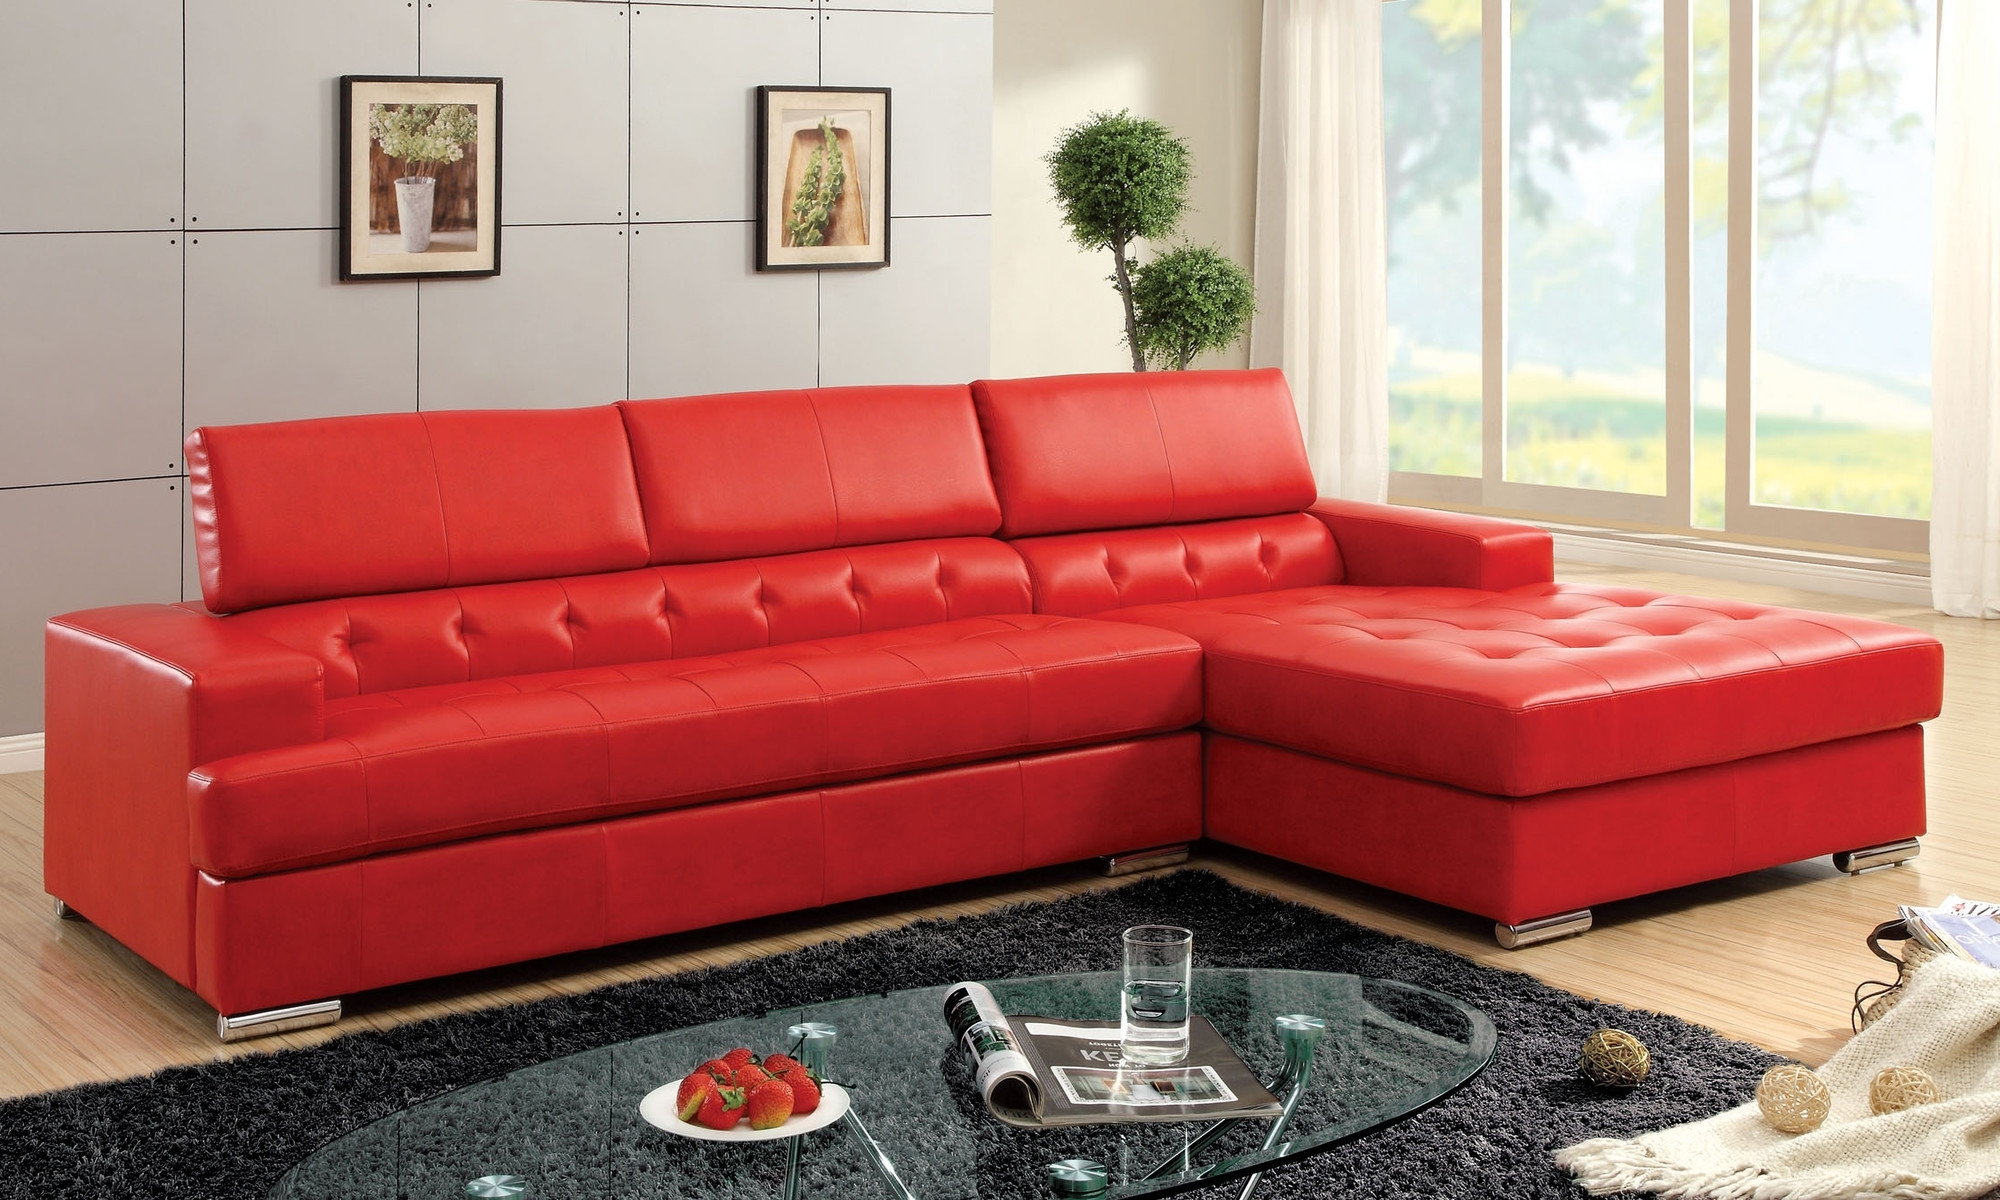 Newest Glamorous Genuine Leather Chesterfield Sofa As Well As Modern Within Red Leather Sectionals With Chaise (View 3 of 20)